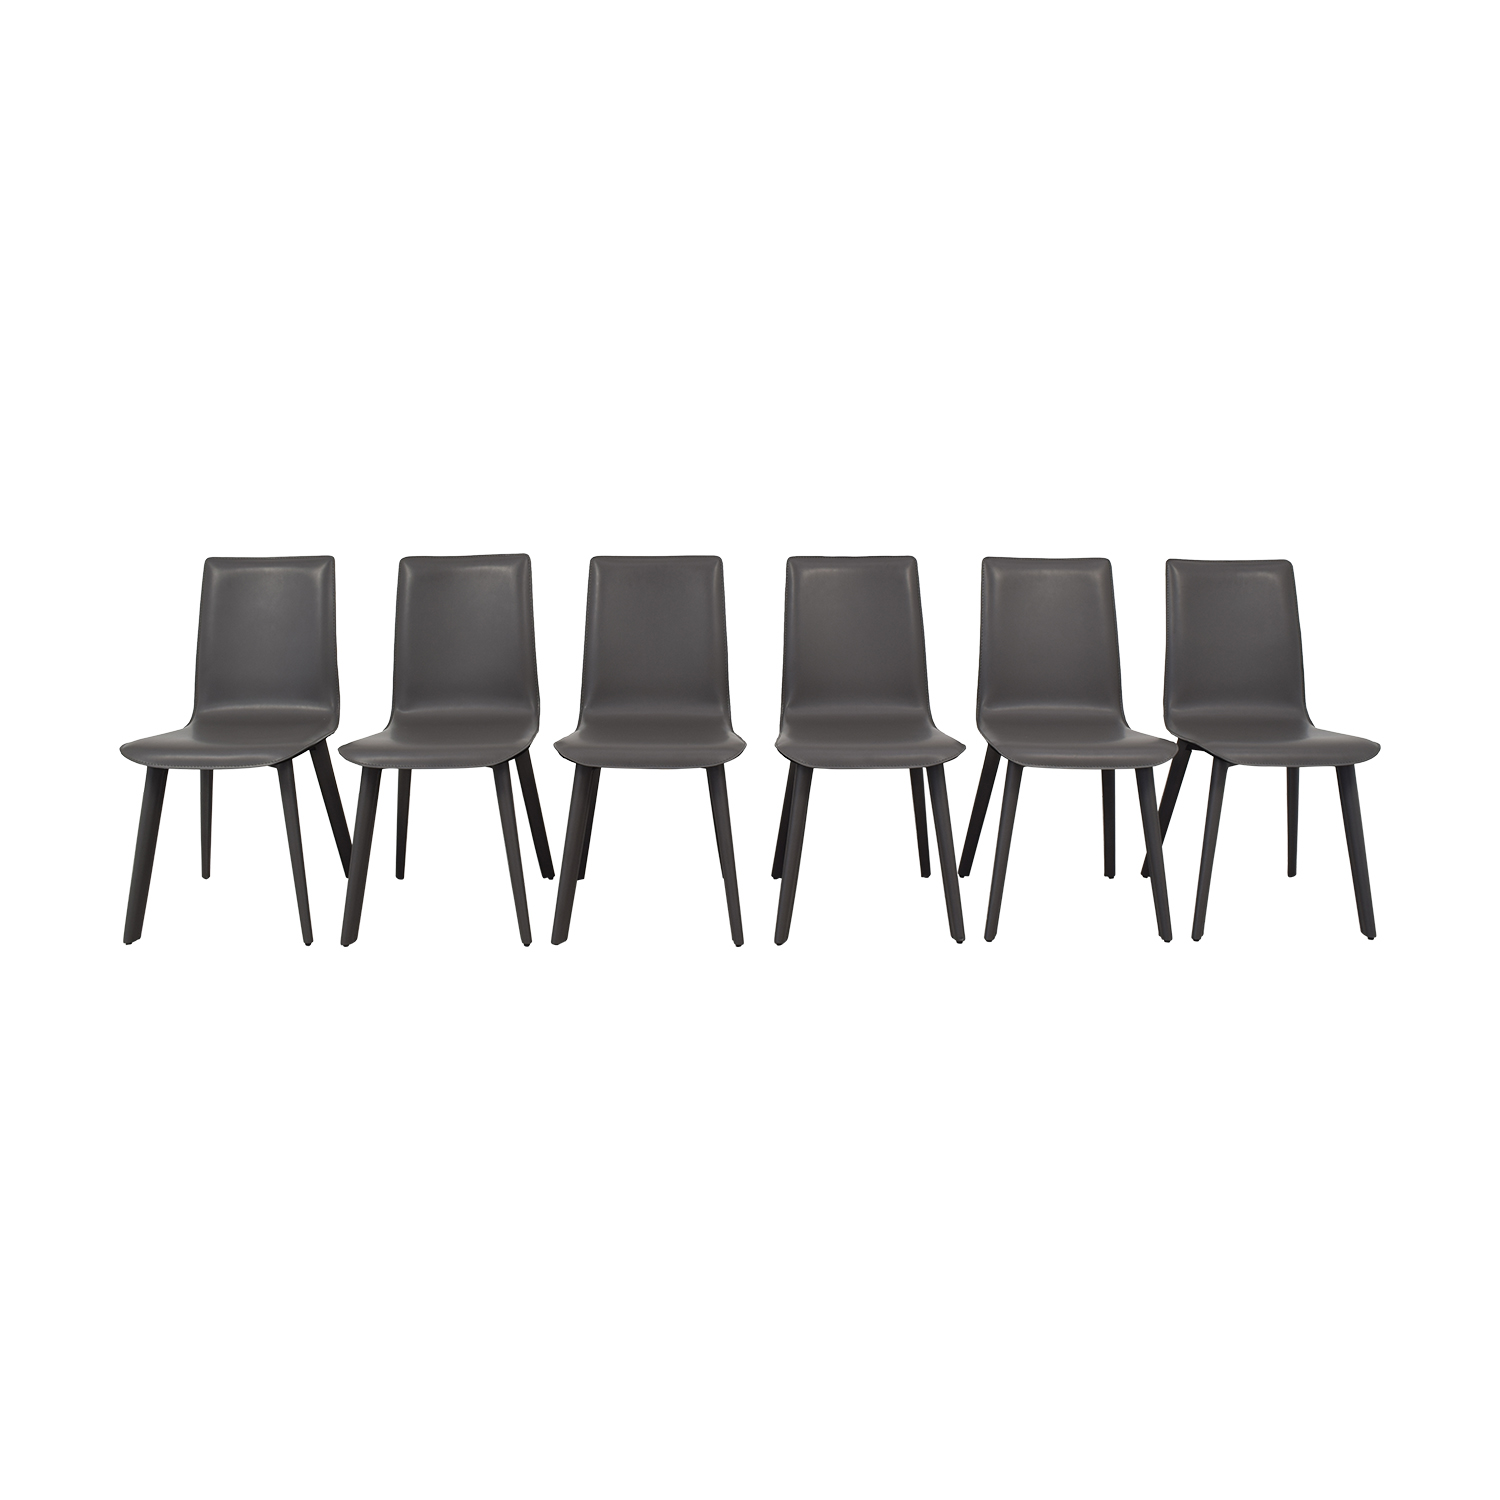 Room & Board Hirsch Dining Chairs / Chairs